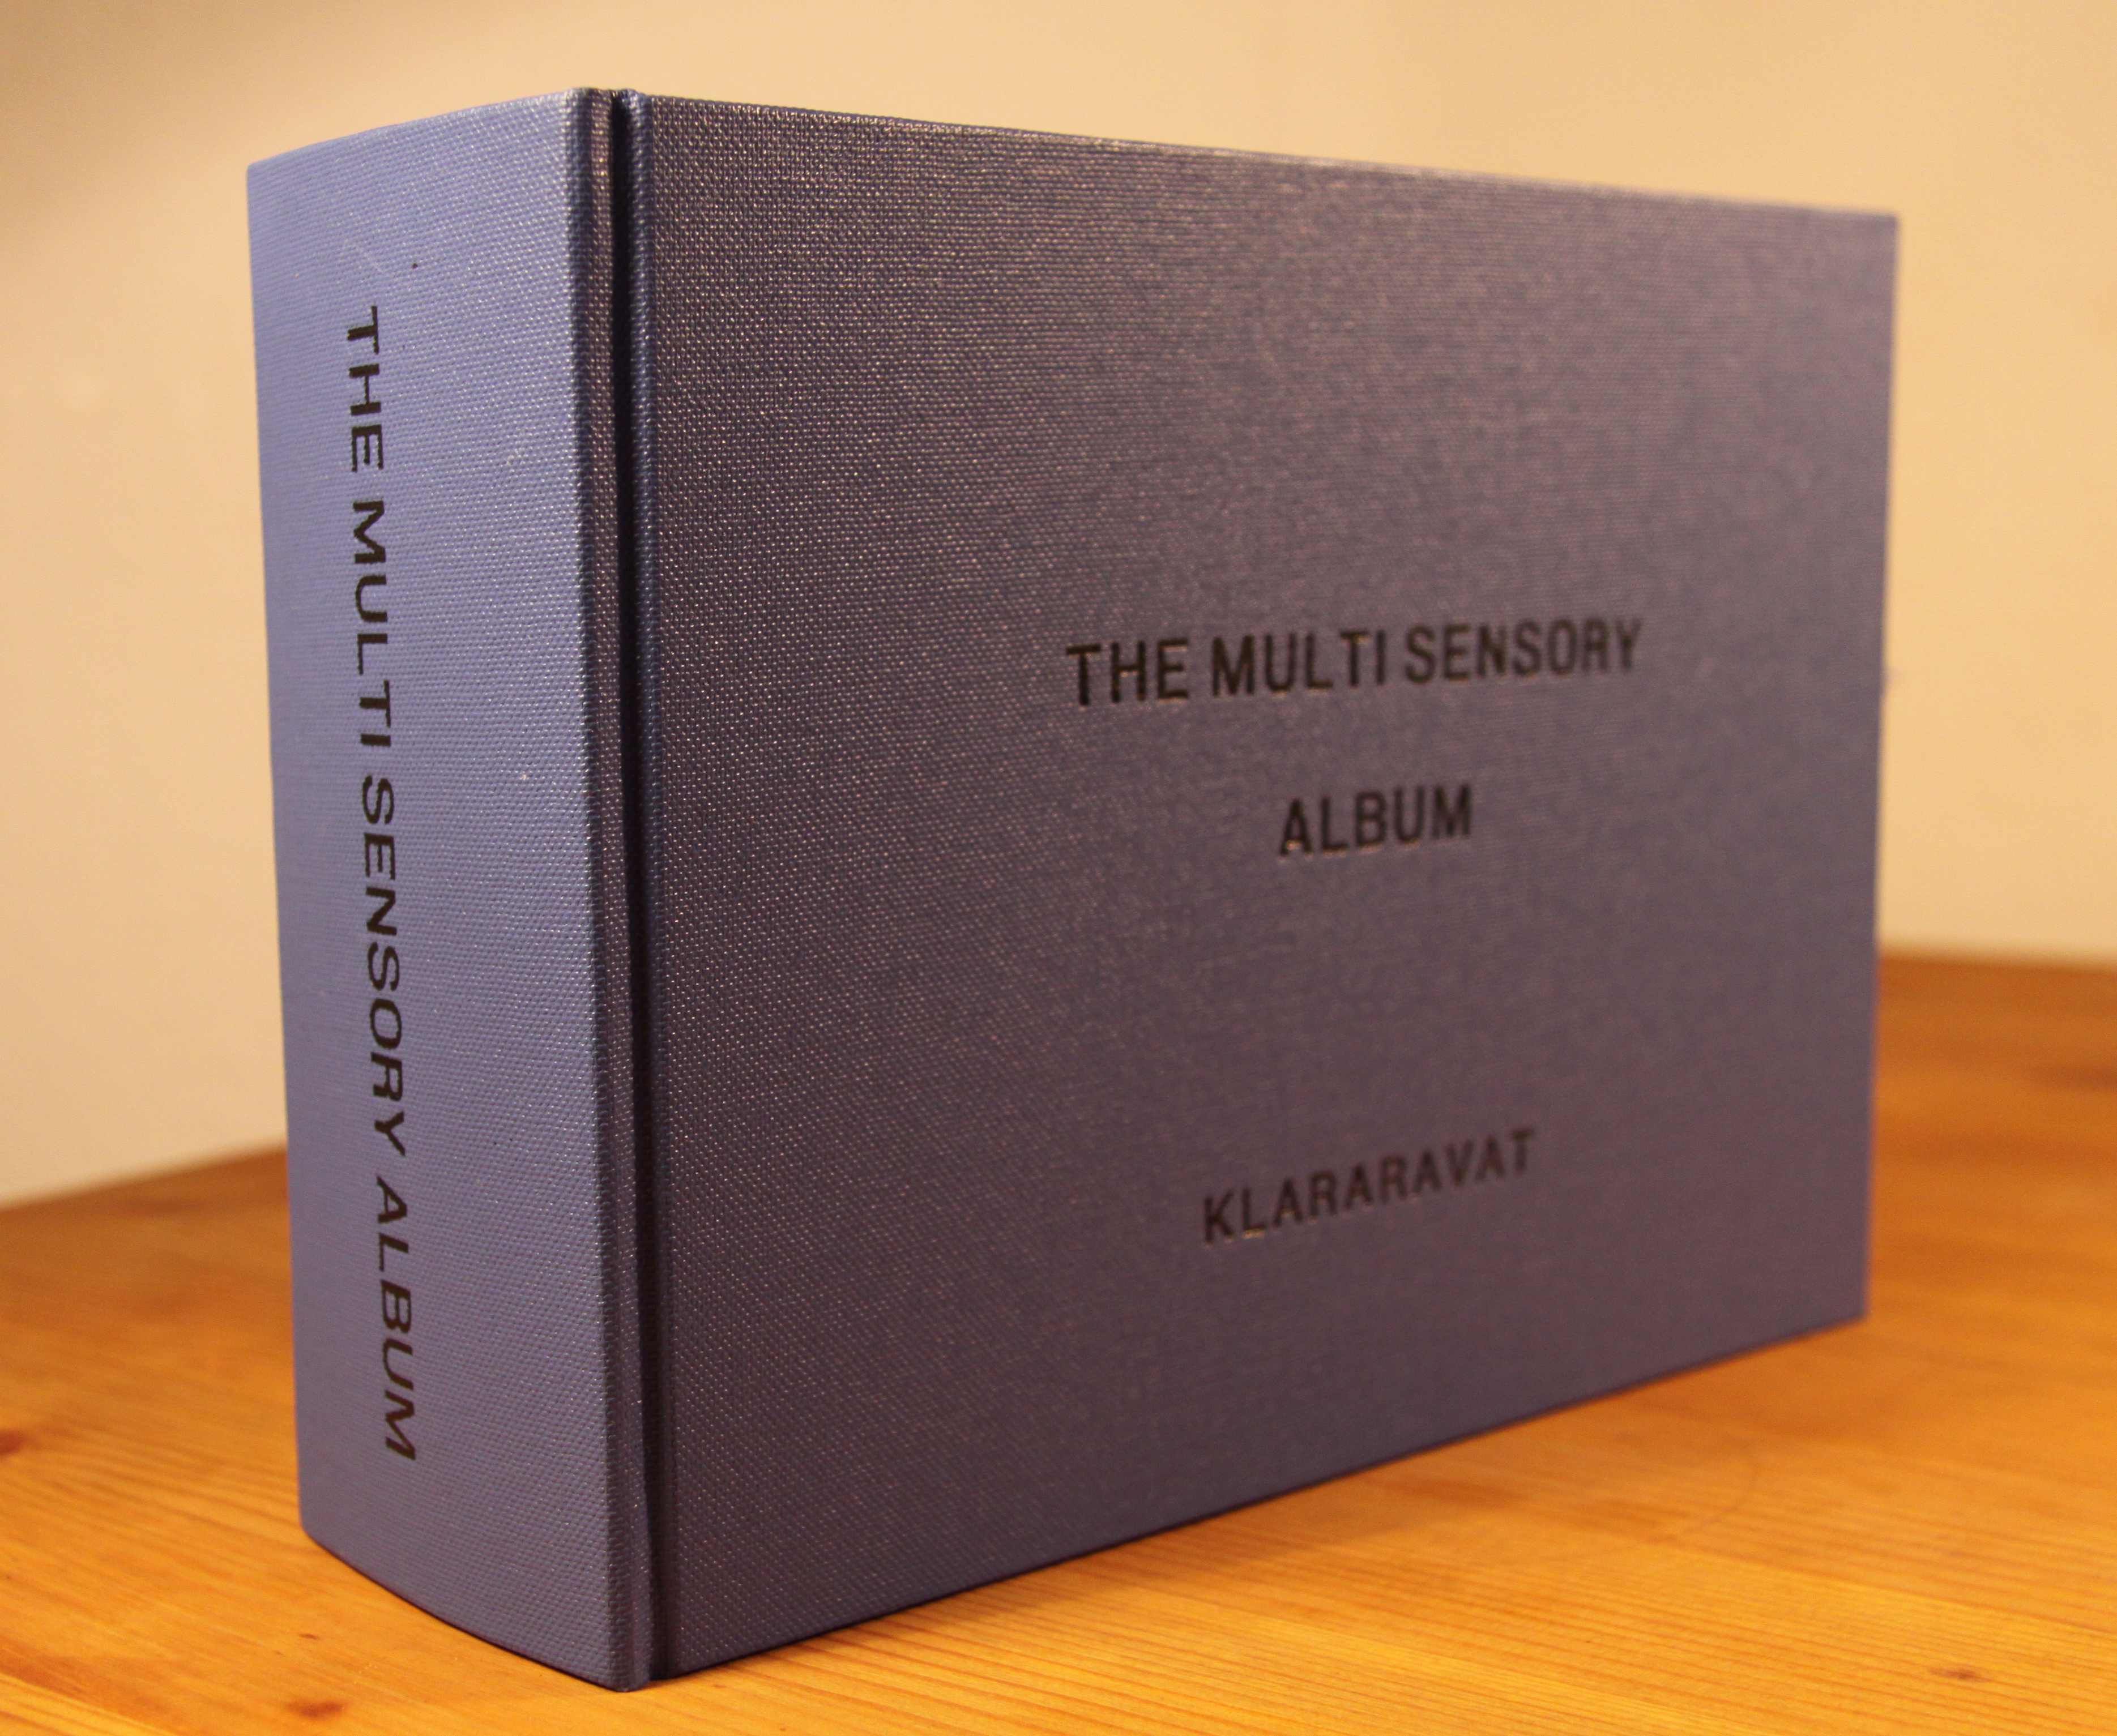 Multy Sensory Album